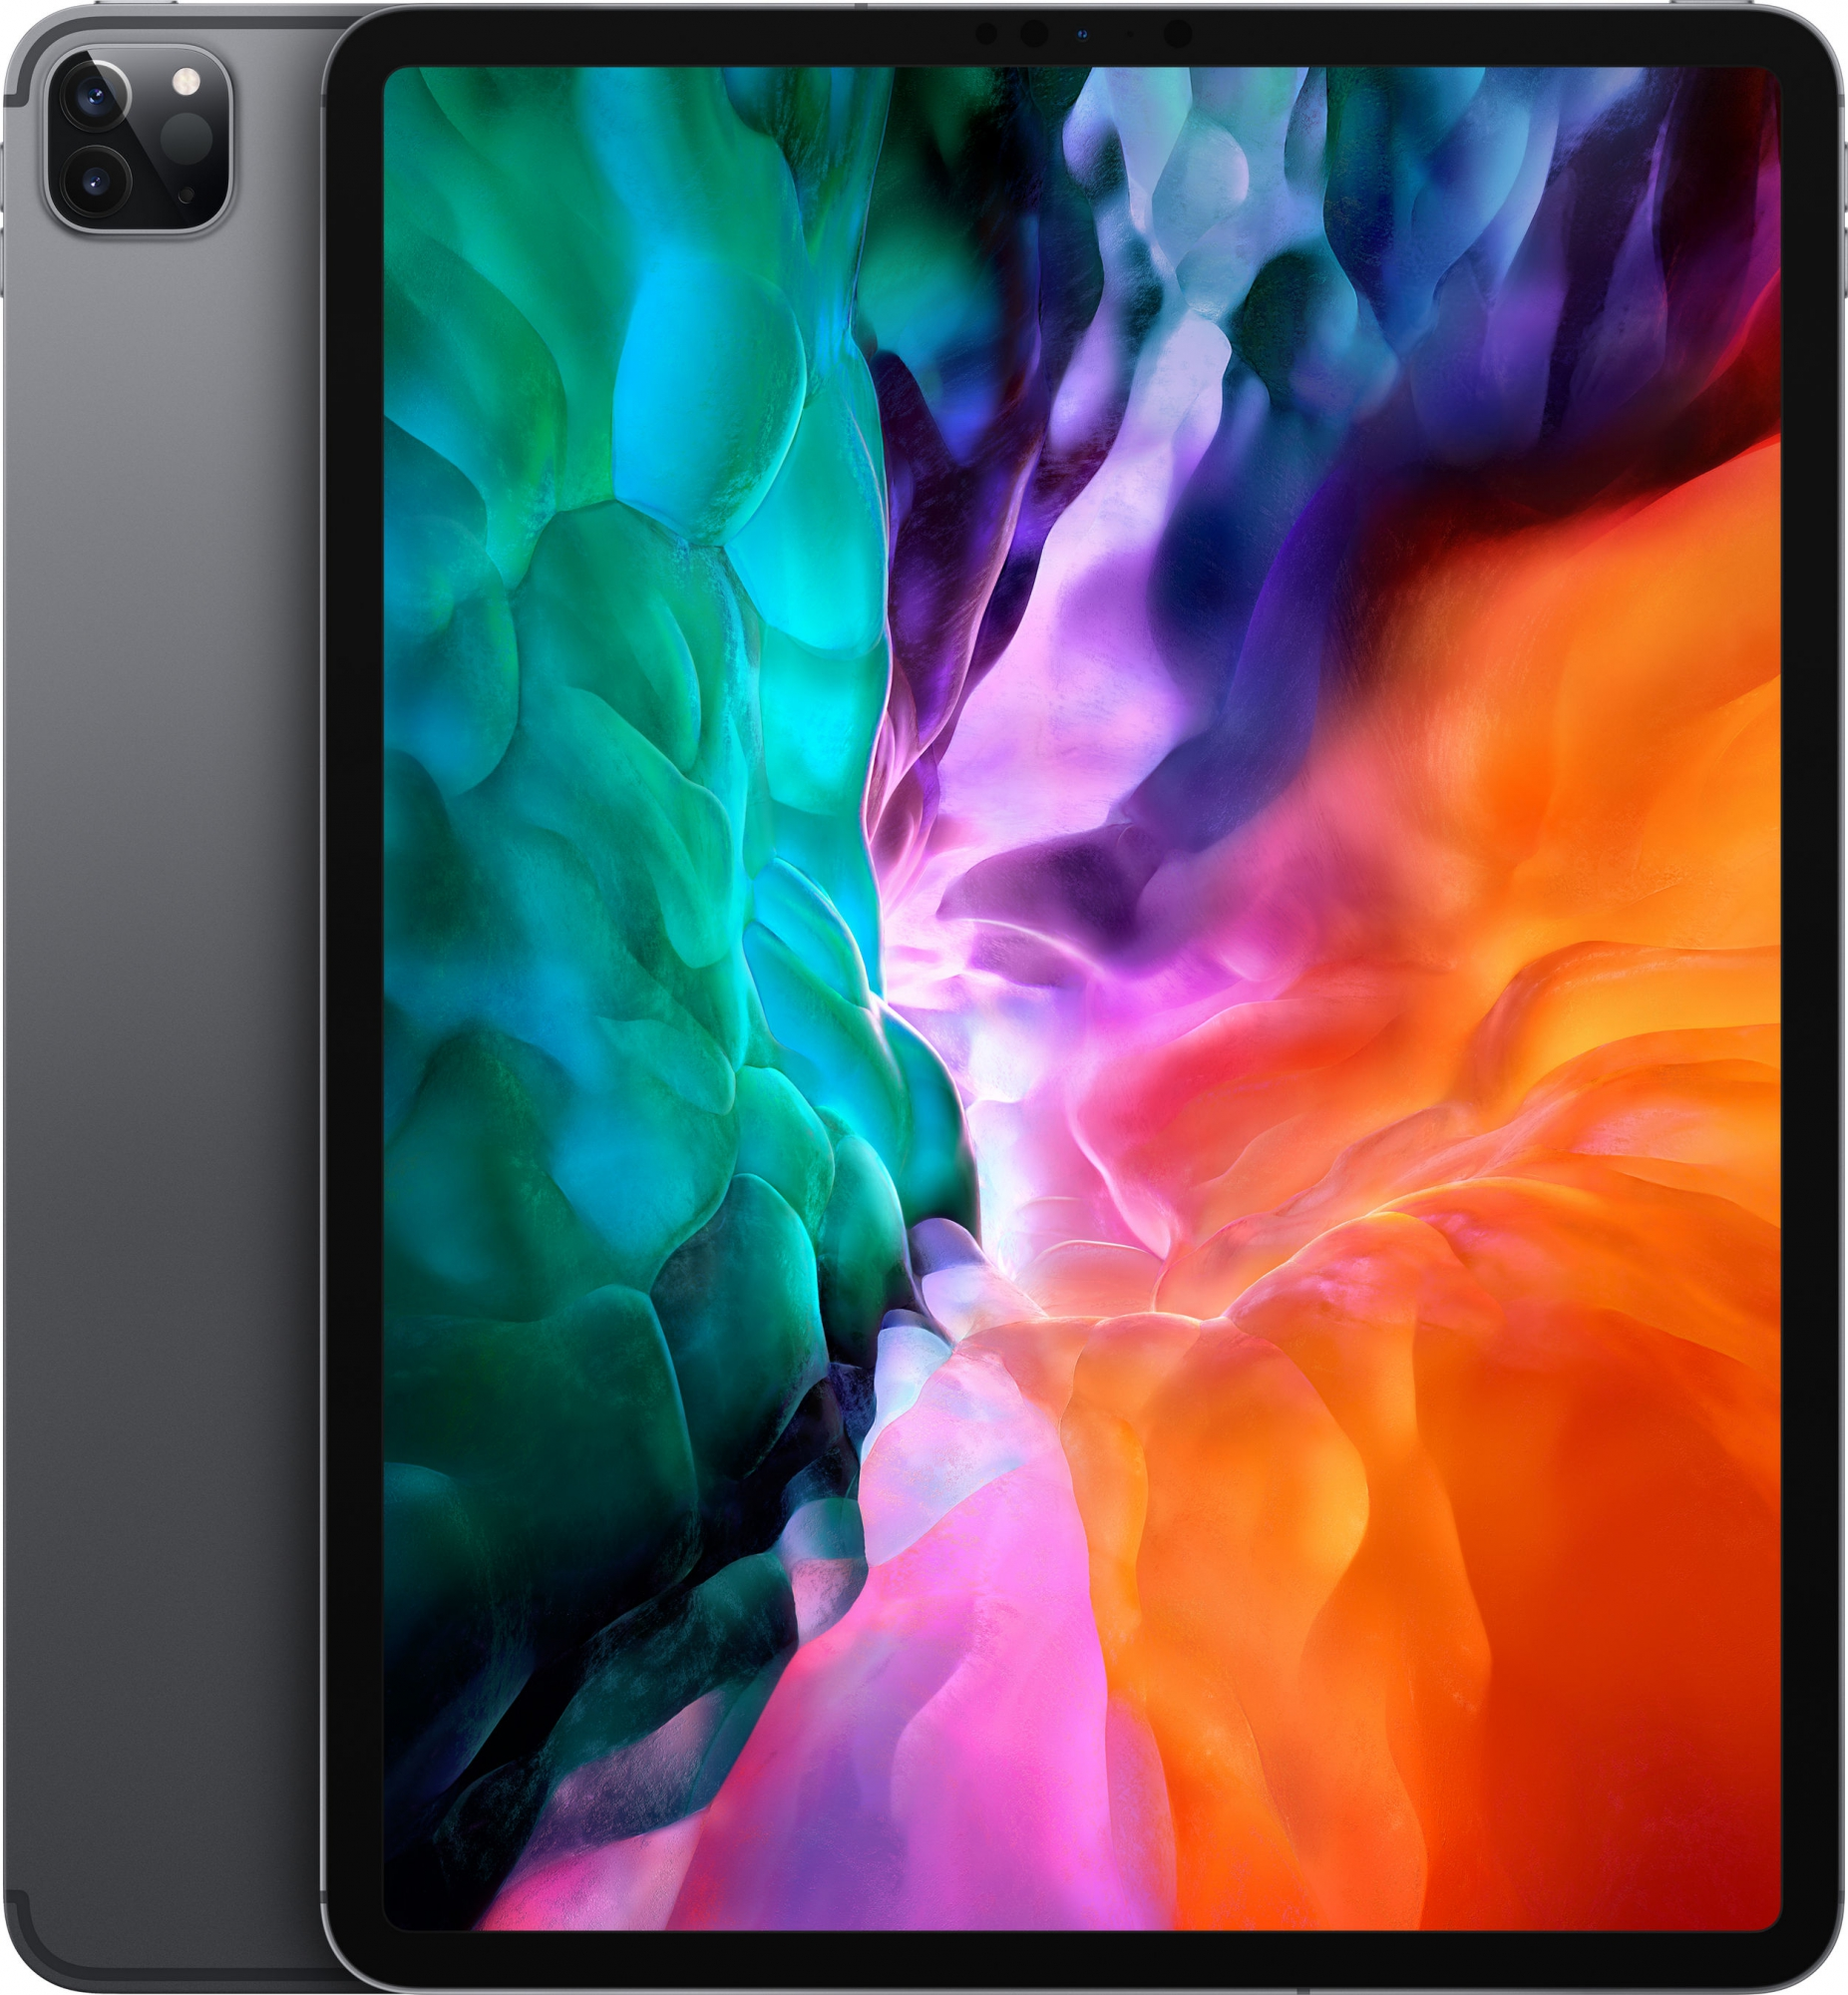 Планшет Apple iPad Pro 12.9 Wi-Fi + Cellular 128GB 2020 MY3C2 (серый космос)